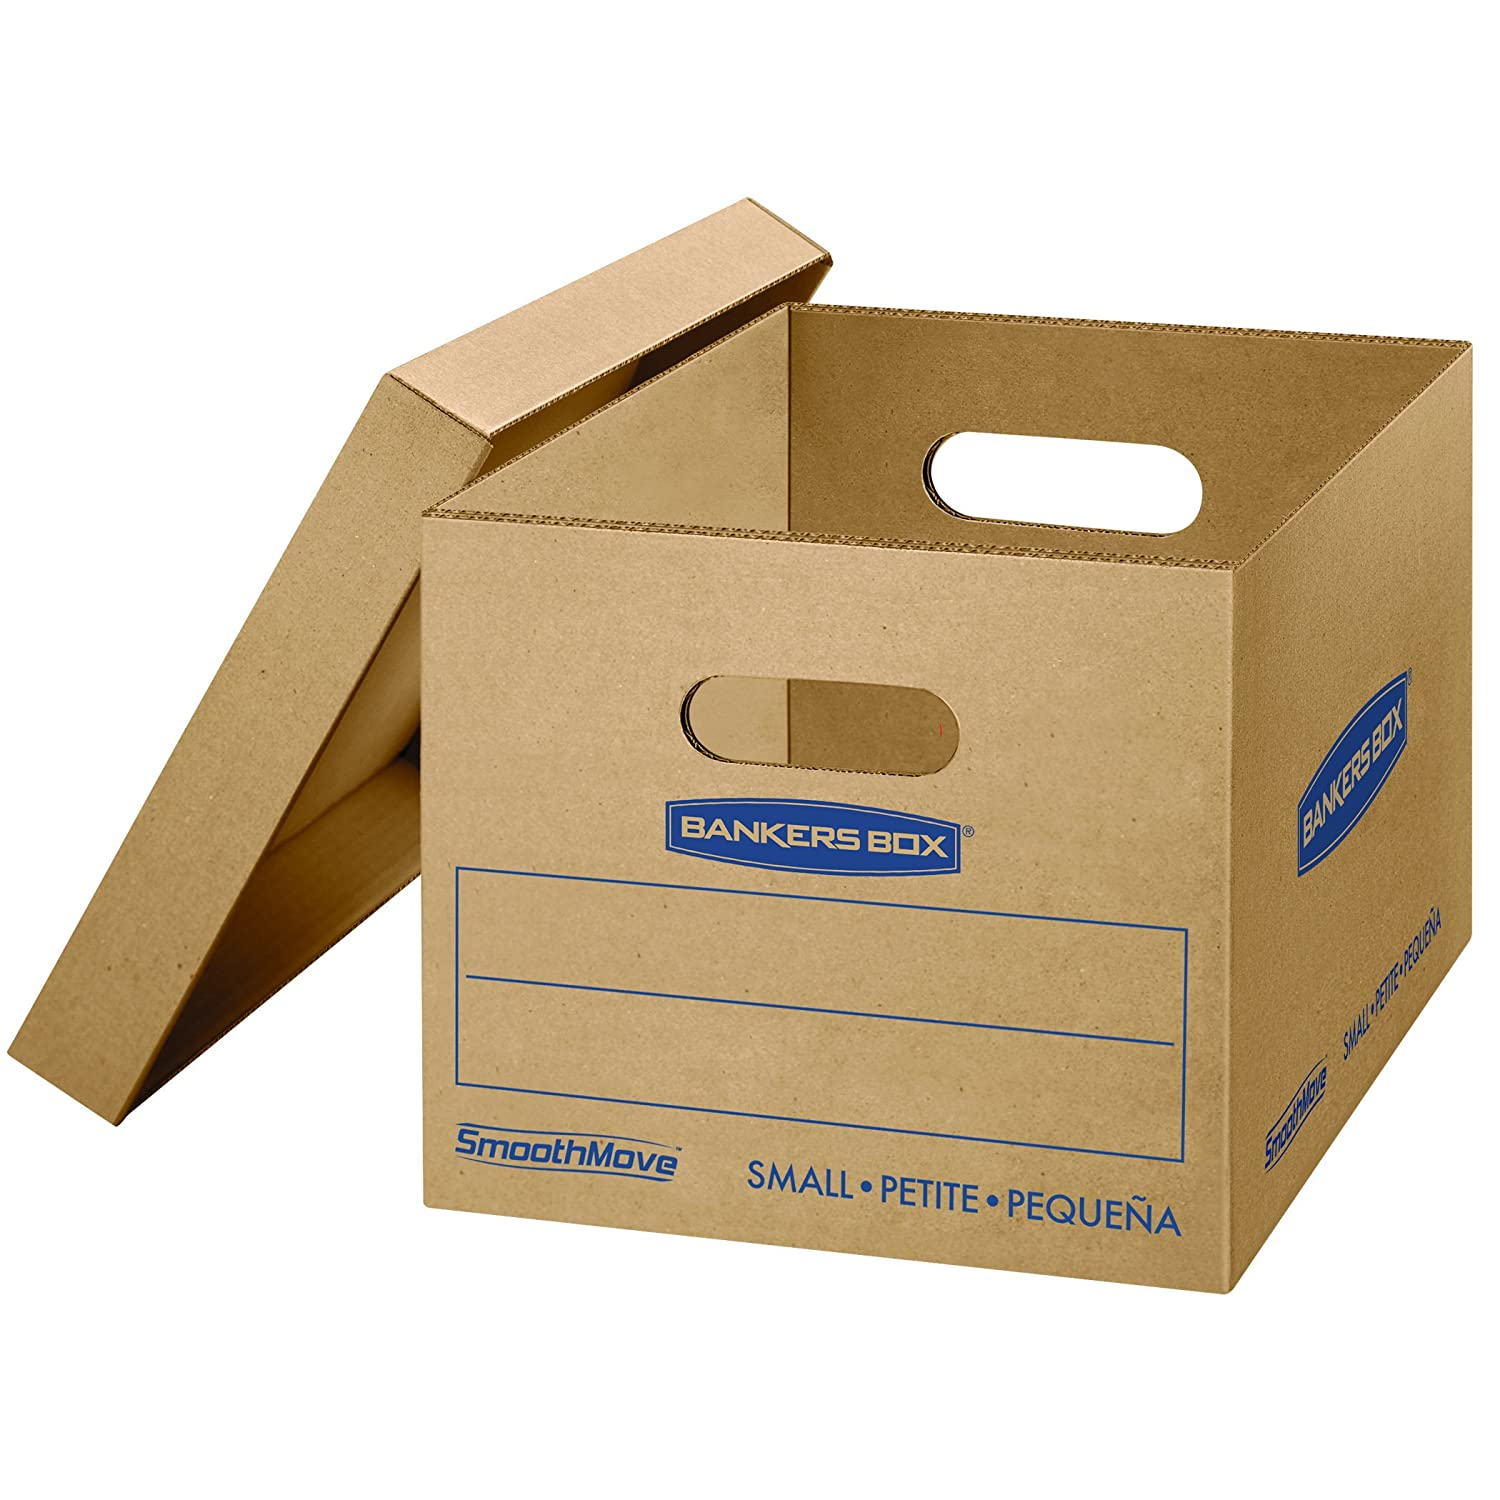 18 x 15 x 14 Inches 7717201 Medium Bankers Box SmoothMove Classic Moving Boxes Easy Carry Handles Tape-Free Assembly 8 Pack